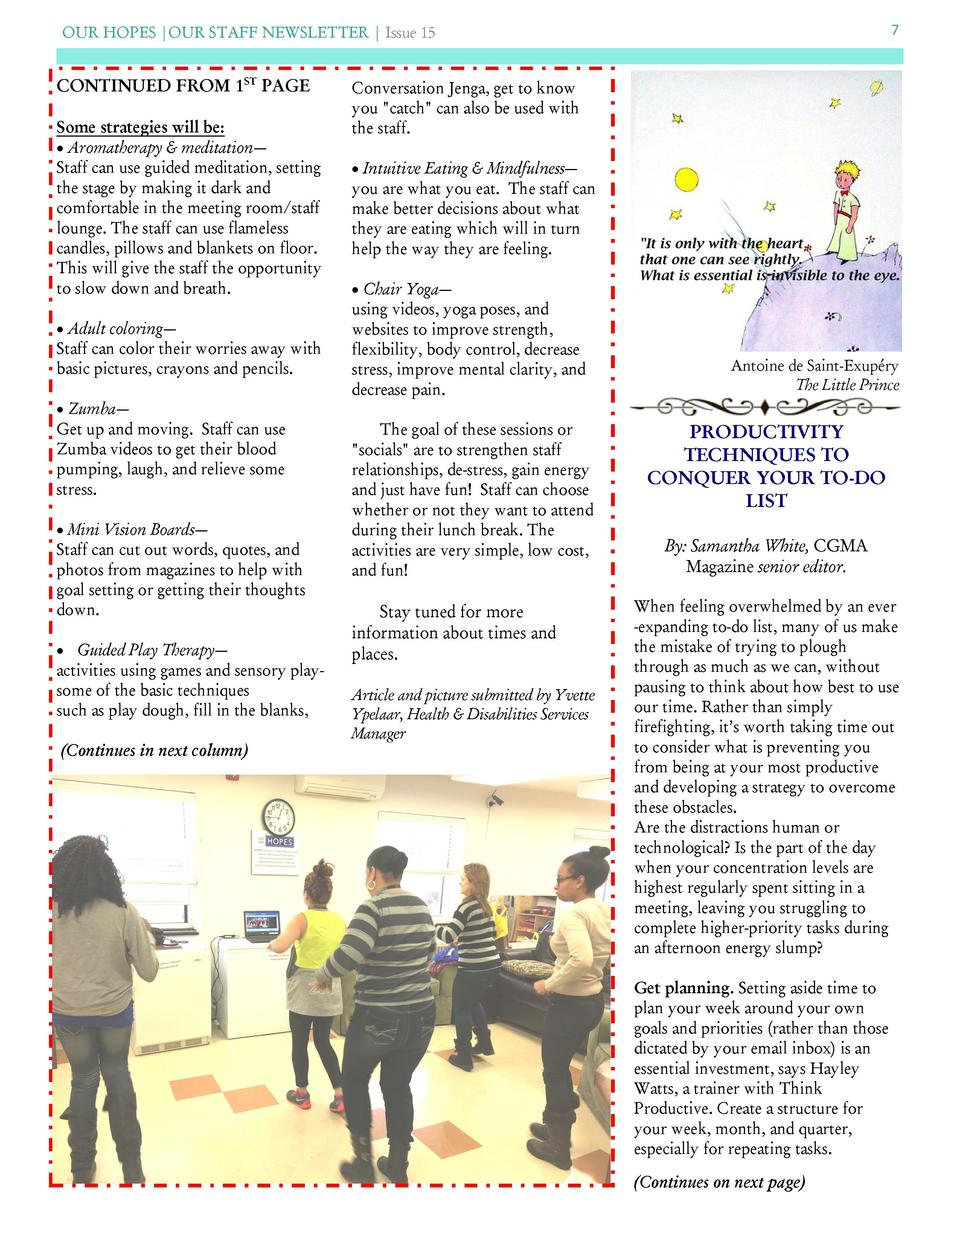 OUR HOPES  OUR STAFF NEWSLETTER   Issue 15  CONTINUED FROM 1ST PAGE Some strategies will be      Aromatherapy   meditation...